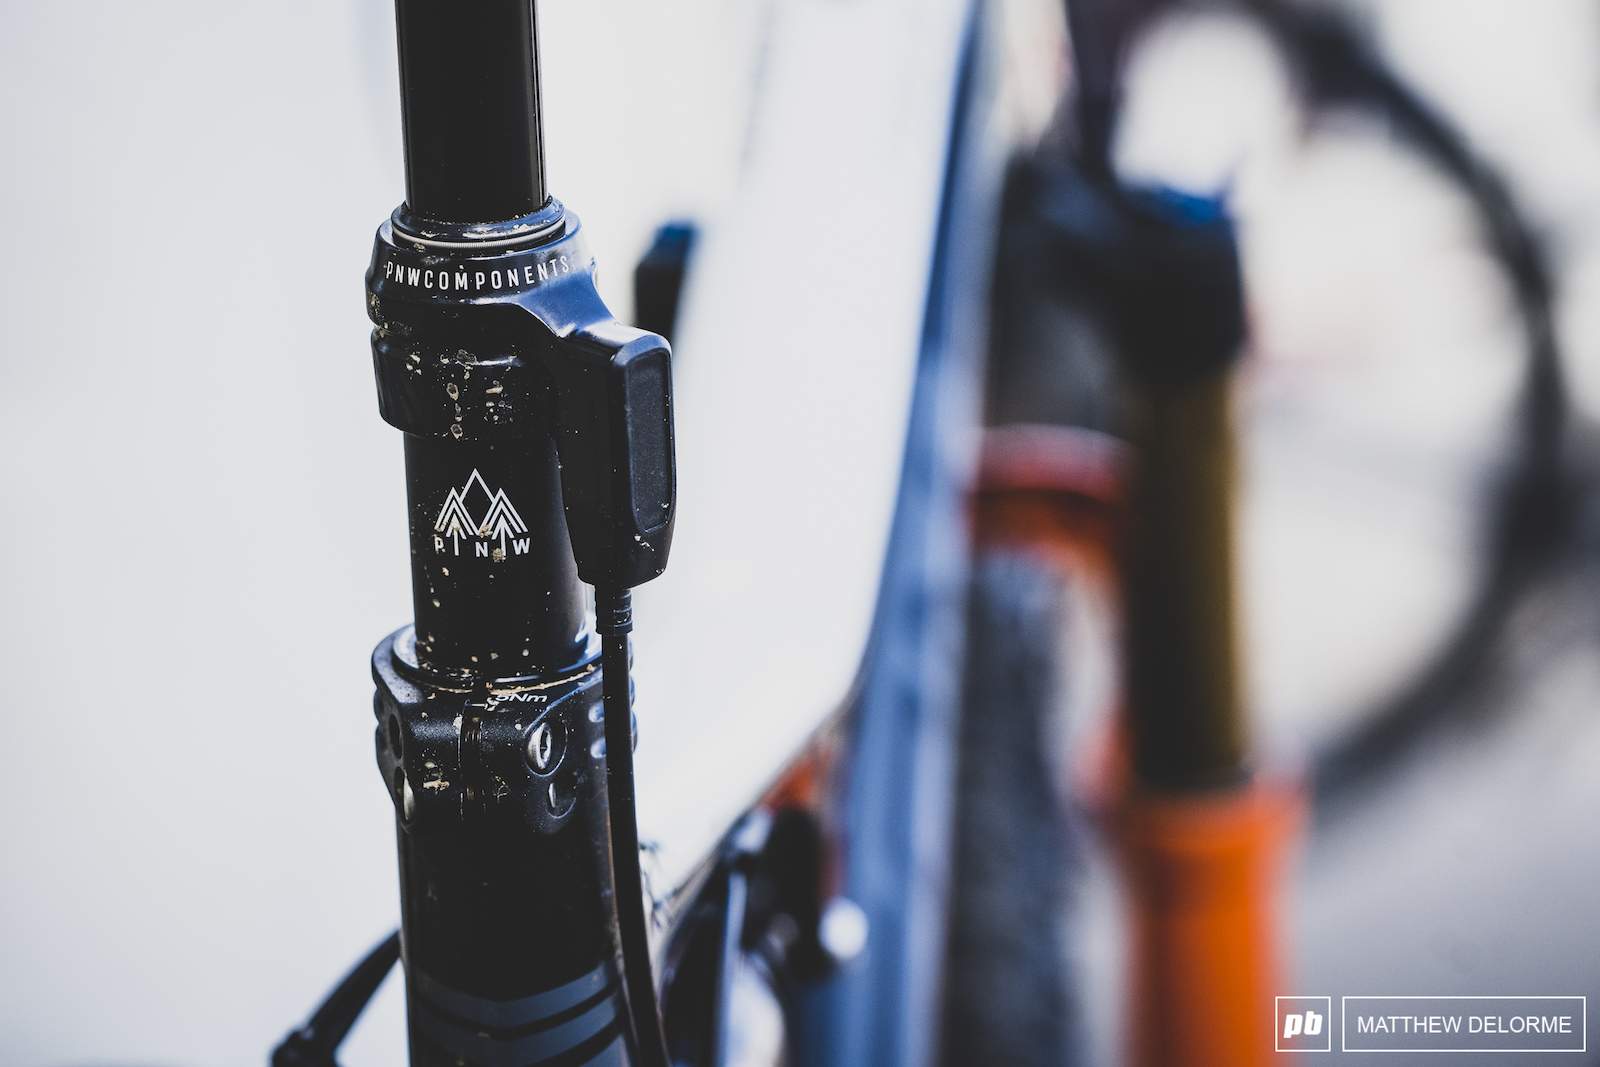 An early PNW components dropper for dealing with MSA s technical descents.